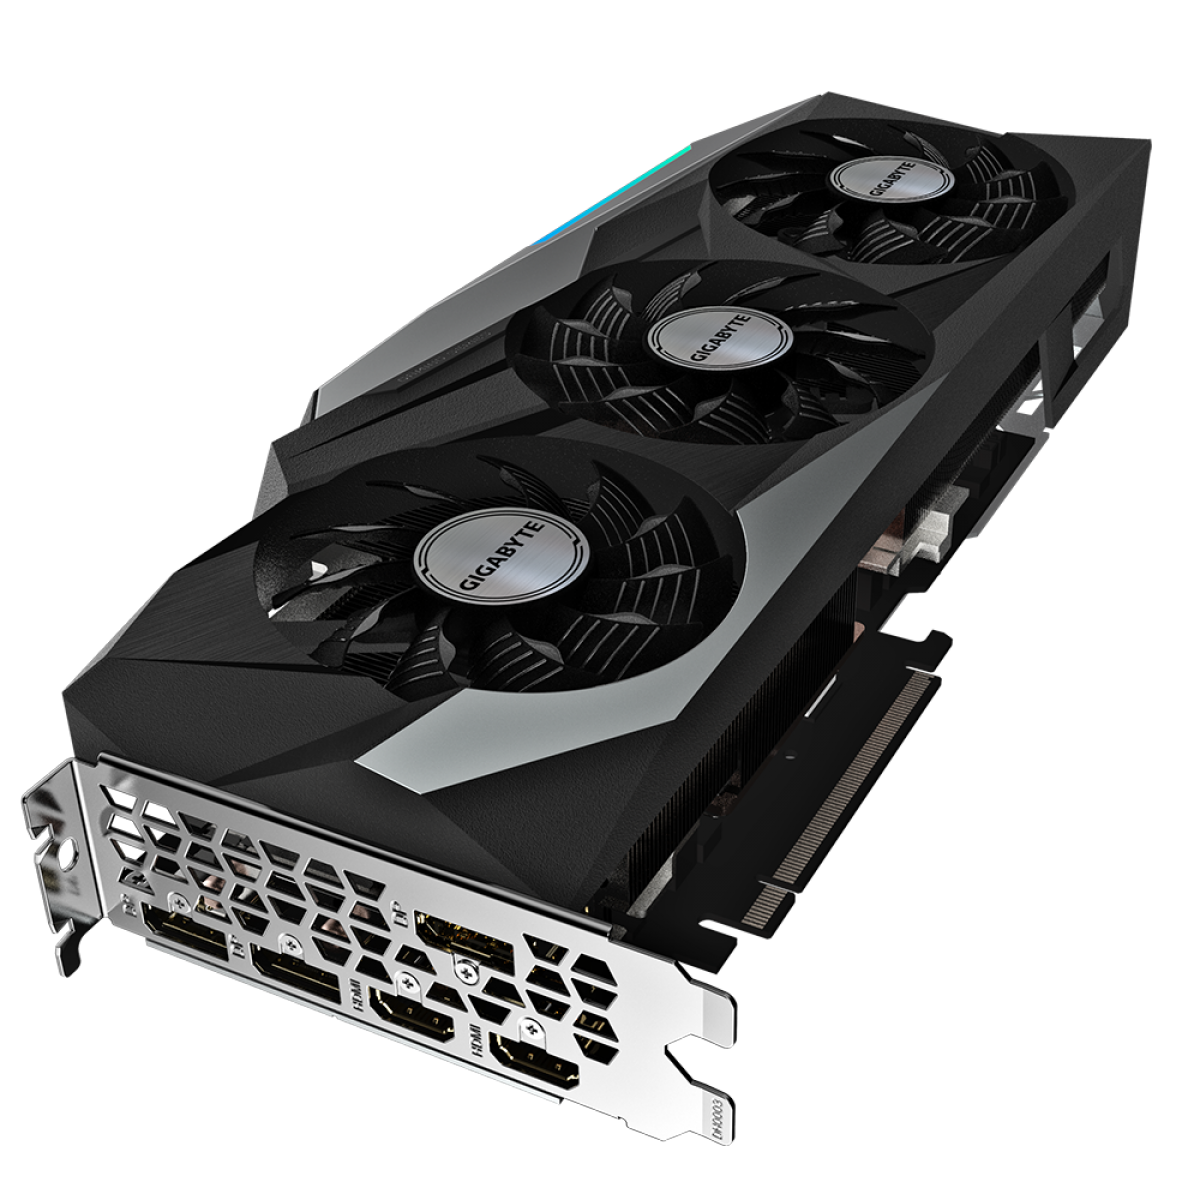 Placa de Vídeo Gigabyte GeForce, RTX 3080 Gaming OC 10G, 10GB, GDDR6X, 320Bit, GV-N3080GAMINGOC-10GD